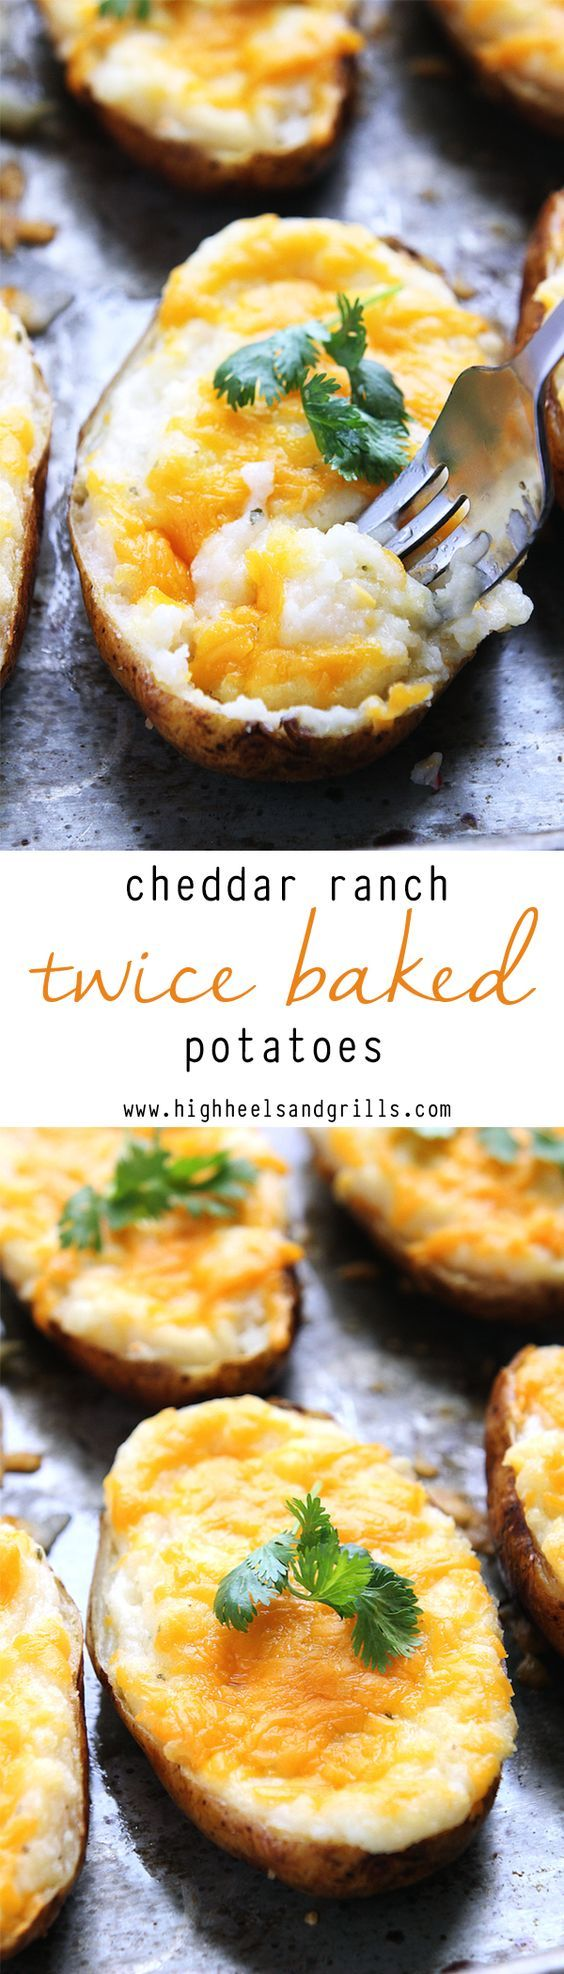 These Cheddar Ranch Twice Baked Potatoes are the only potato recipe you will ever need. They're like a mix between a baked potato, mashed potatoes, and cheesy potatoes with a delicious ranch taste!